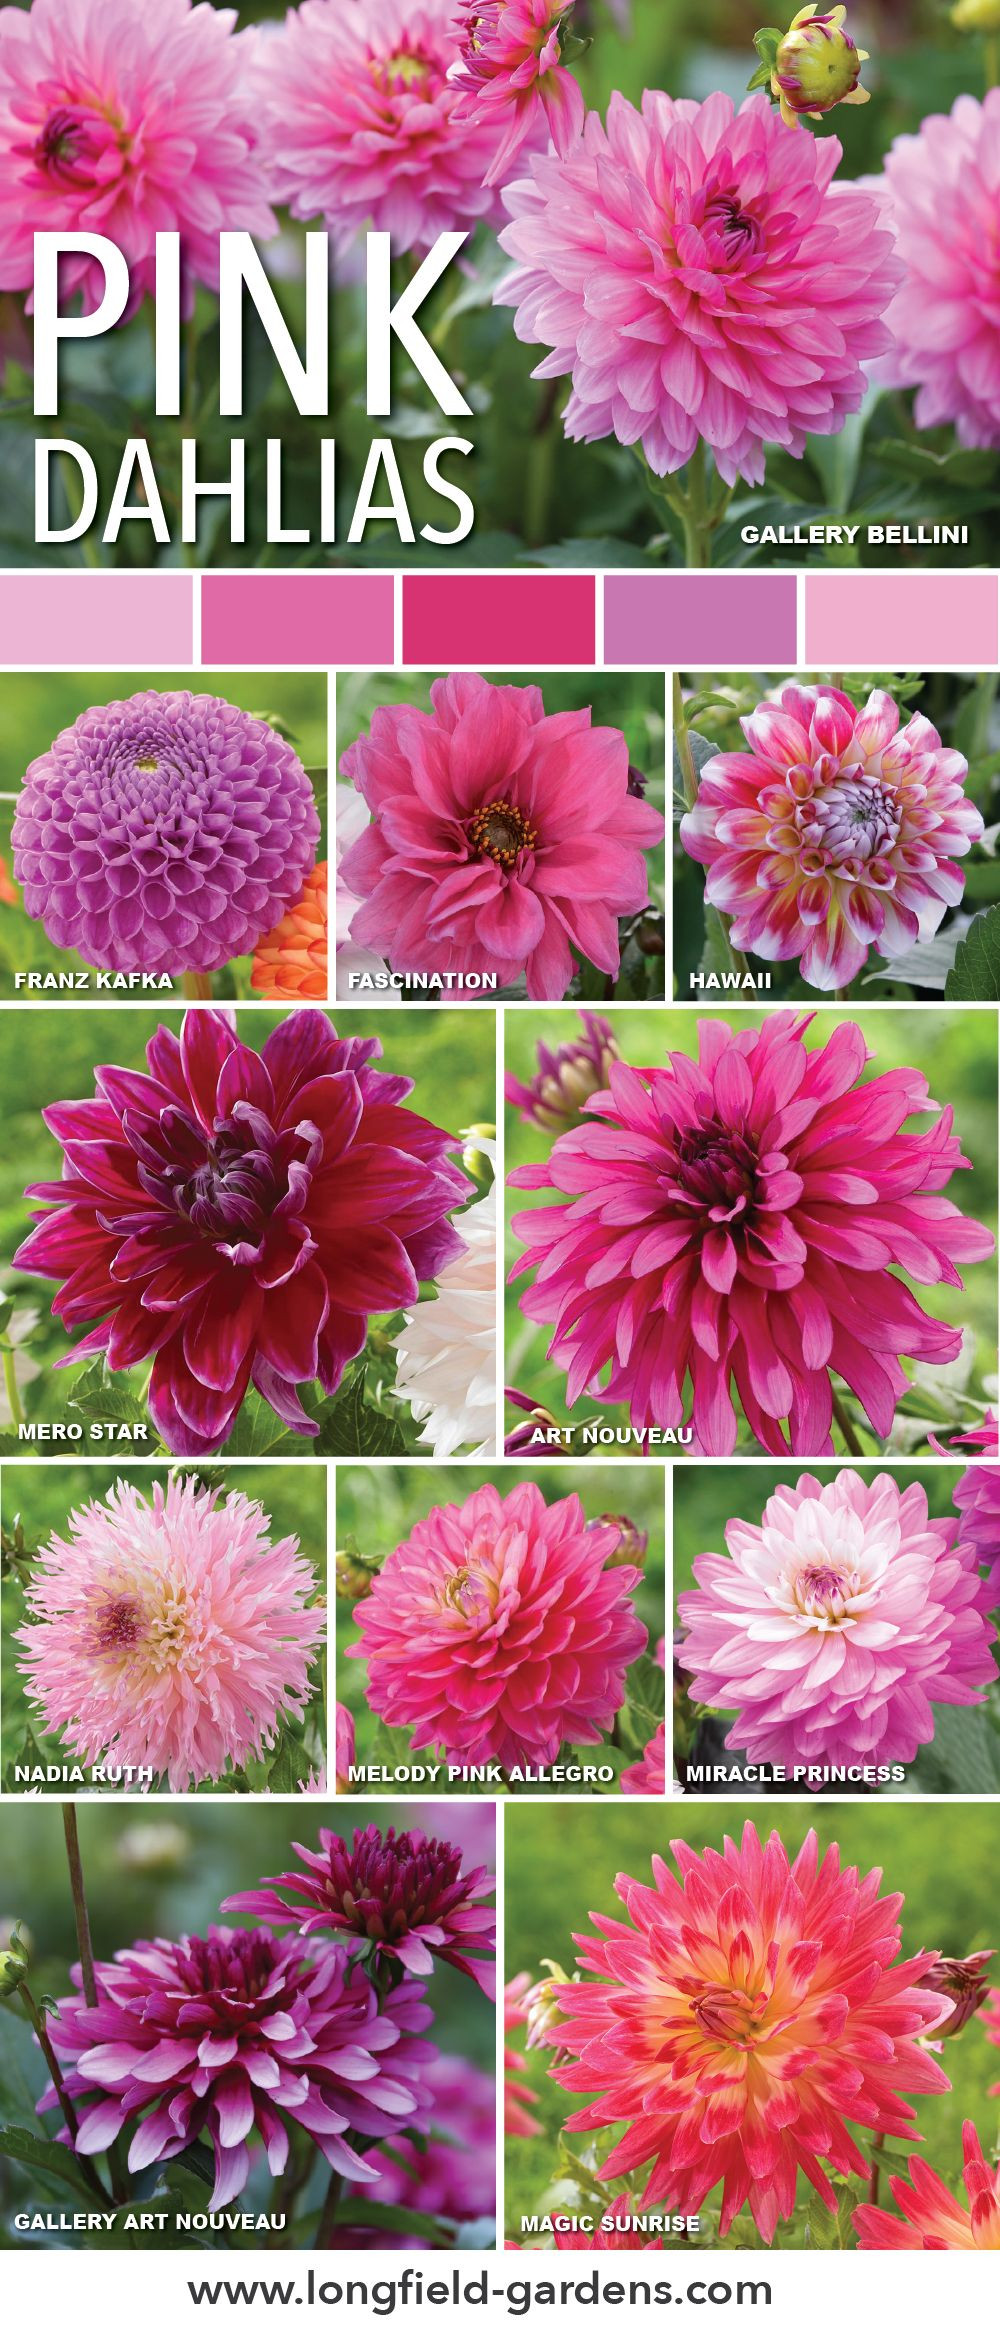 Pink dahlias add a bold or delicate touch to your garden